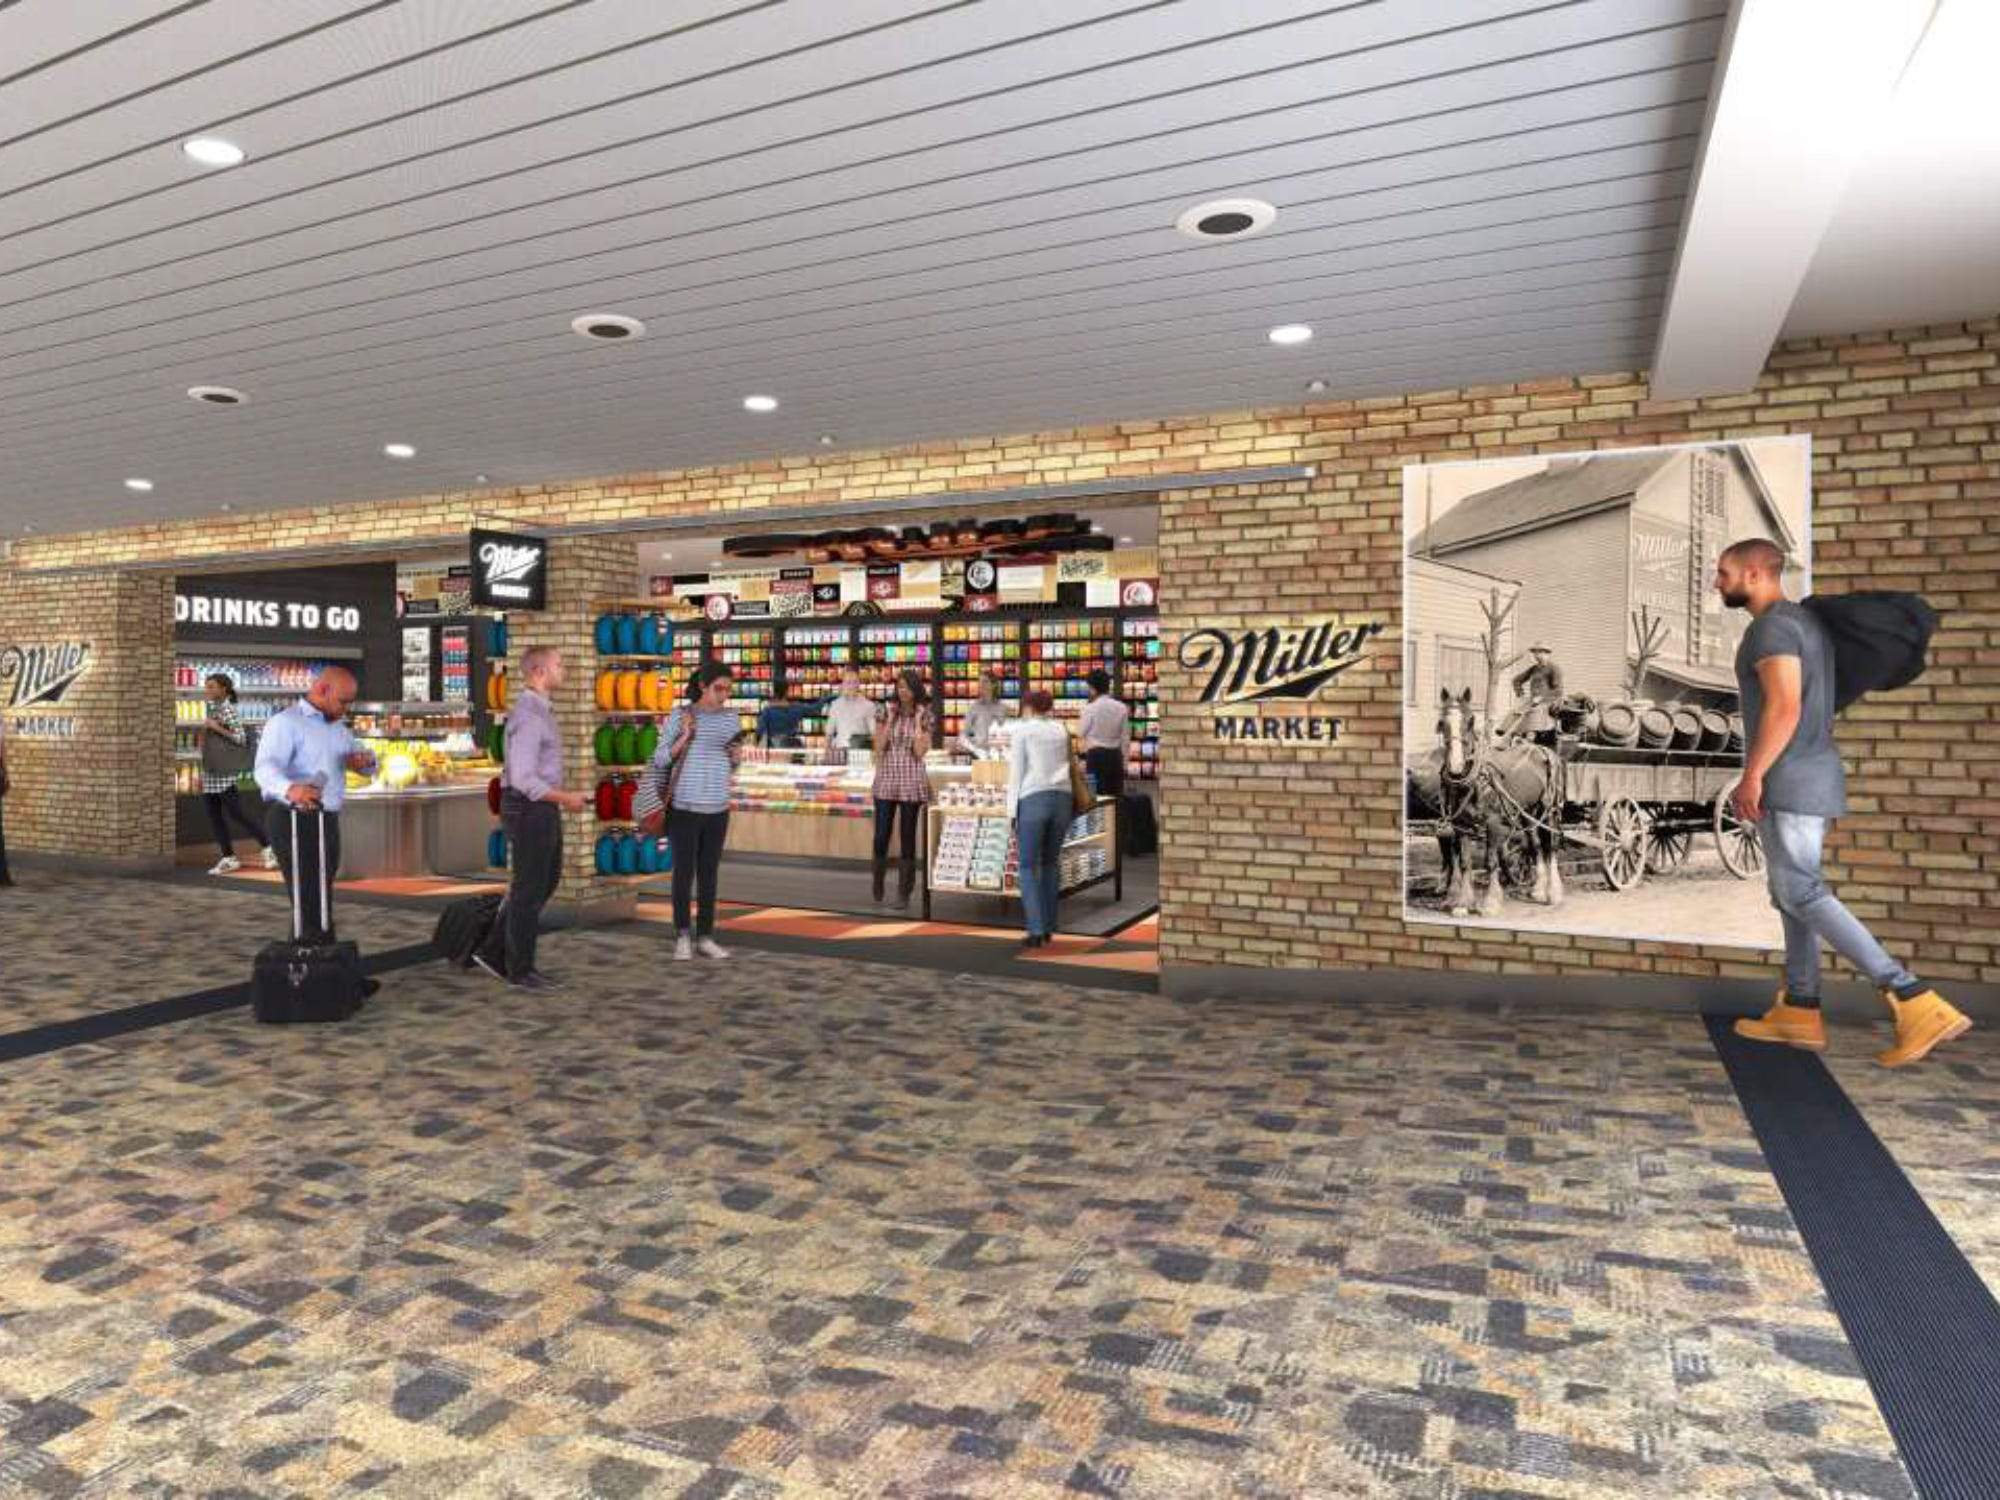 In all, 22 restaurants and retail shops will be remodeled or replaced by next year at Milwaukee Mitchell International Airport as part of a $7 million makeover. The project will be done in phases and will feature a mix of local and national brands at restaurants and storefronts throughout the airport.  All of the work is expected to be completed in time for the influx of visitors headed to Milwaukee for the 2020 Democratic National Convention. Milwaukee Mitchell is owned and operated by Milwaukee County.